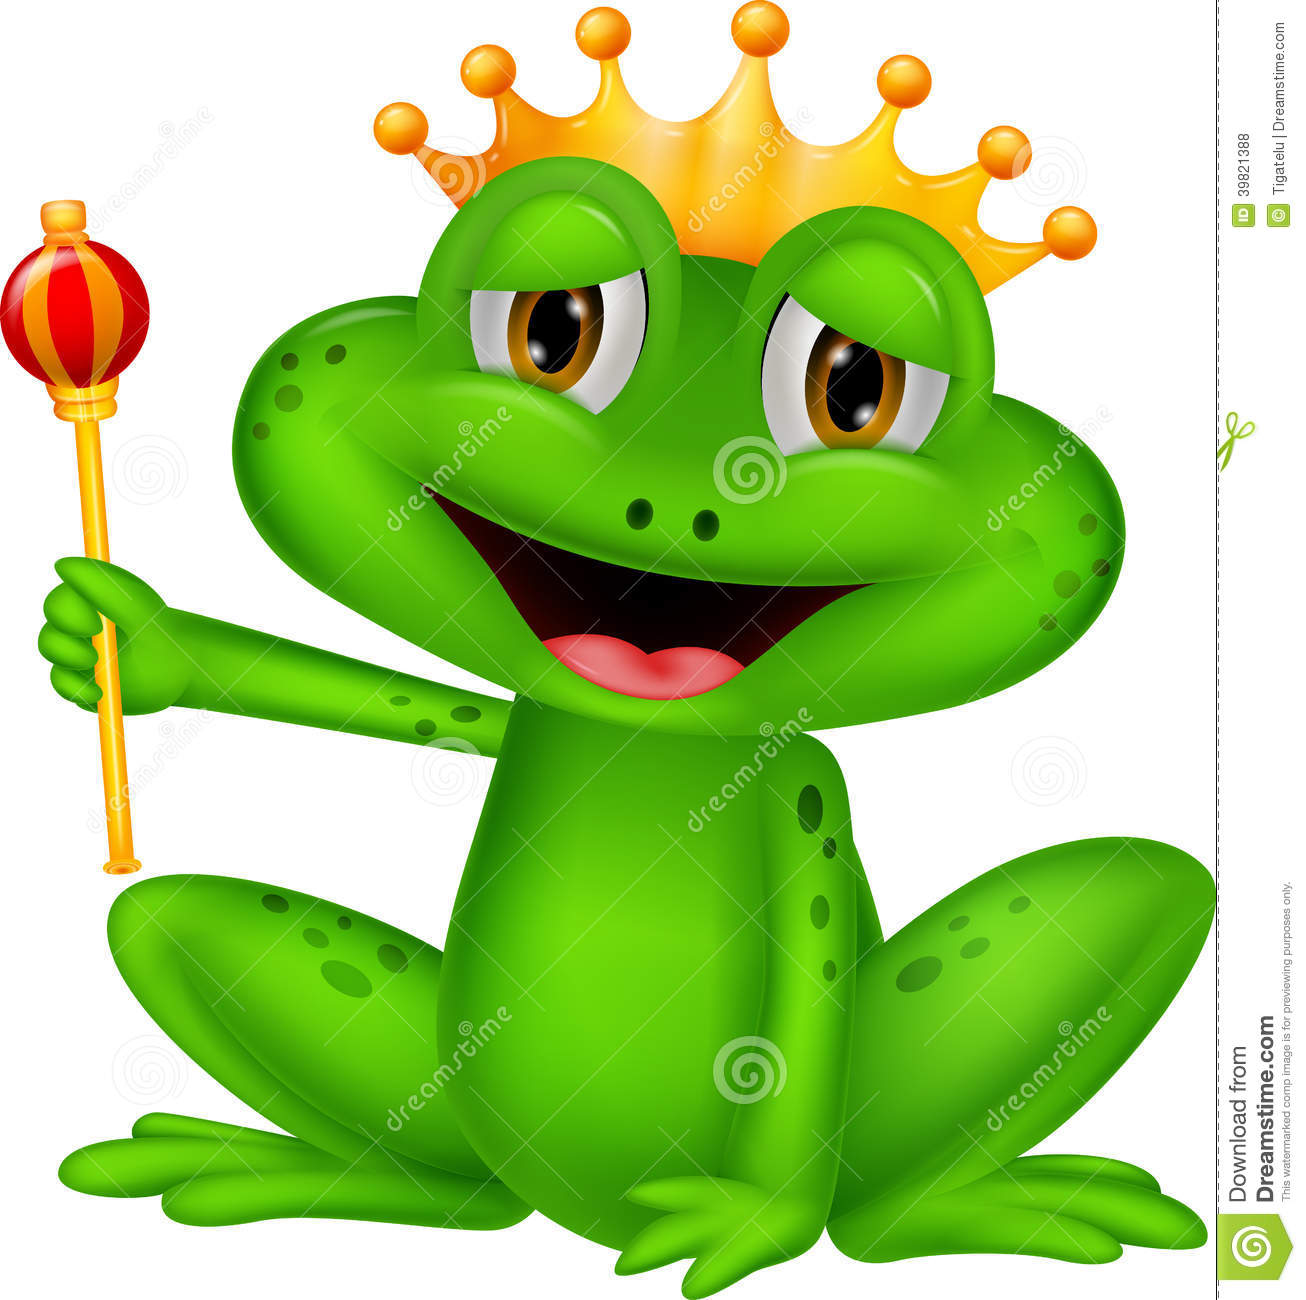 frog king cartoon stock vector illustration of charming cute baby frog clipart cute frog clipart free